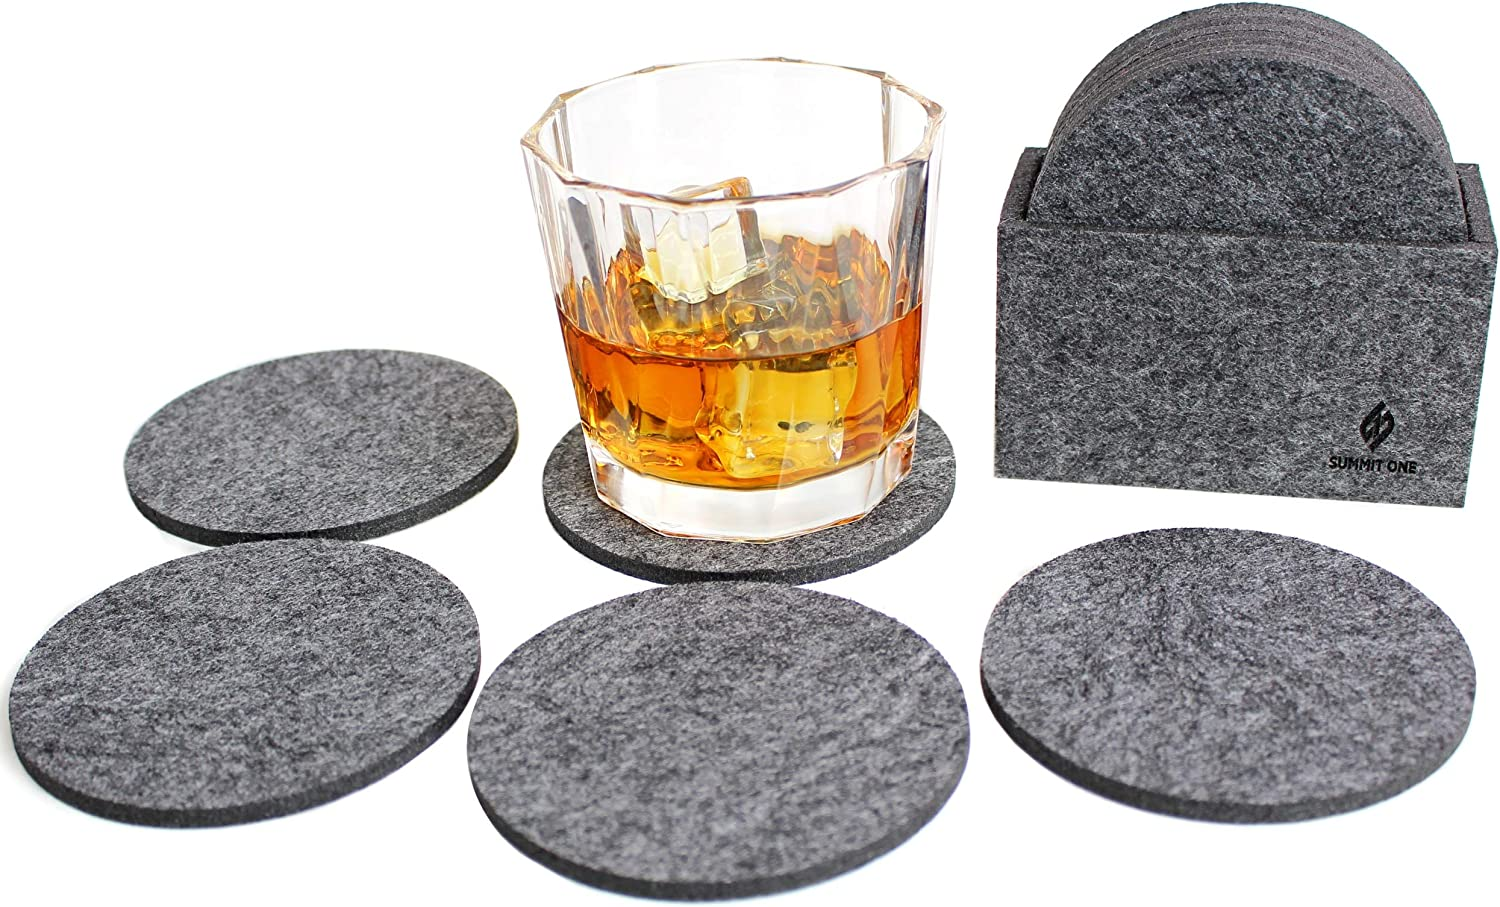 Summit One Premium Felt Absorbent Coasters, Set of 8 (4 Inch Round, 5mm Thick) - Super Absorbent Coasters For Drinks